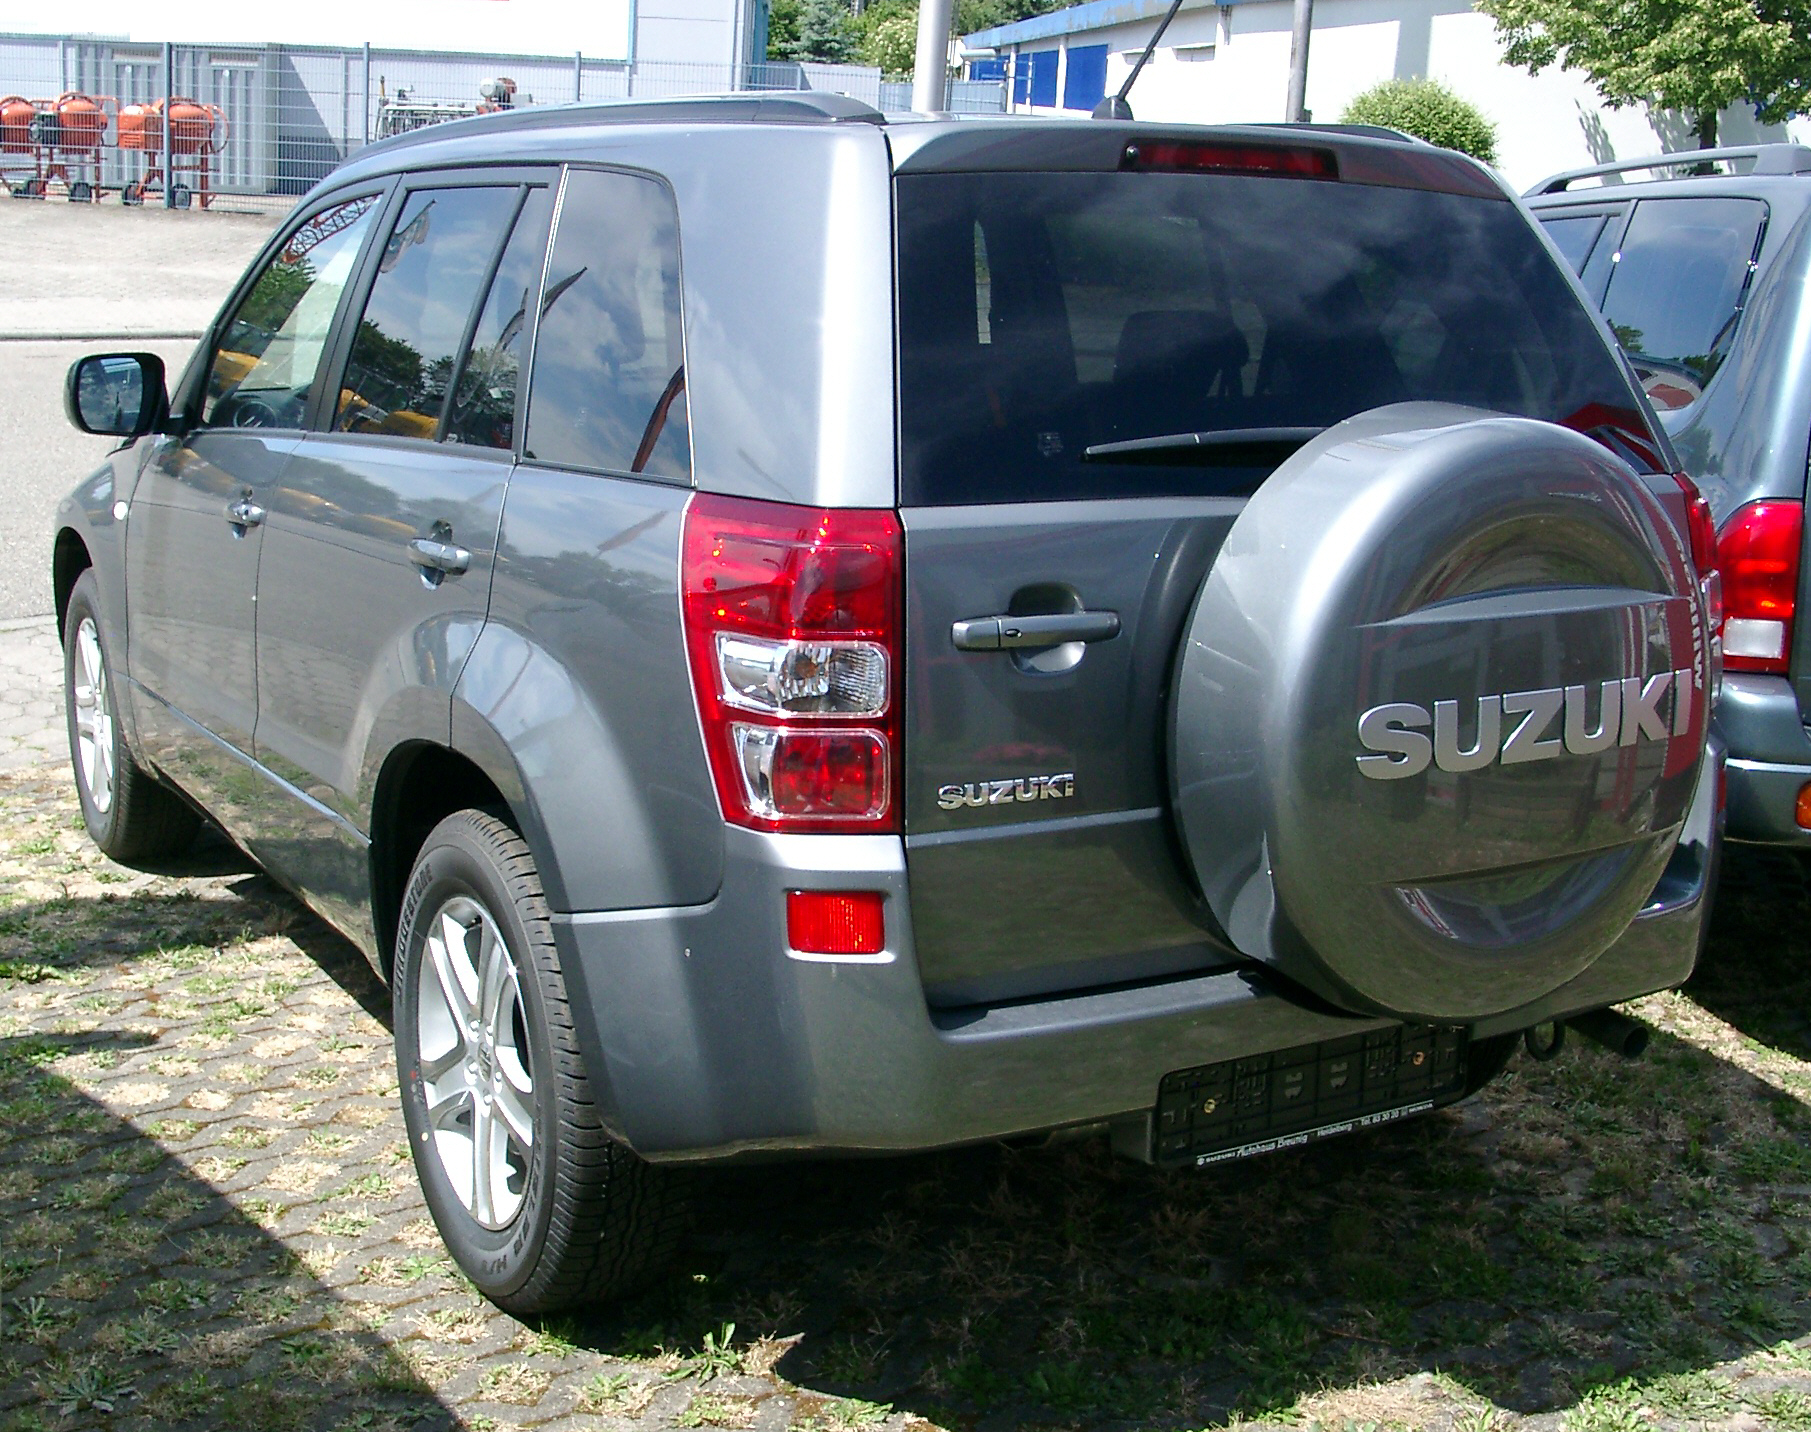 Suzuki Grand Vitara Wheels